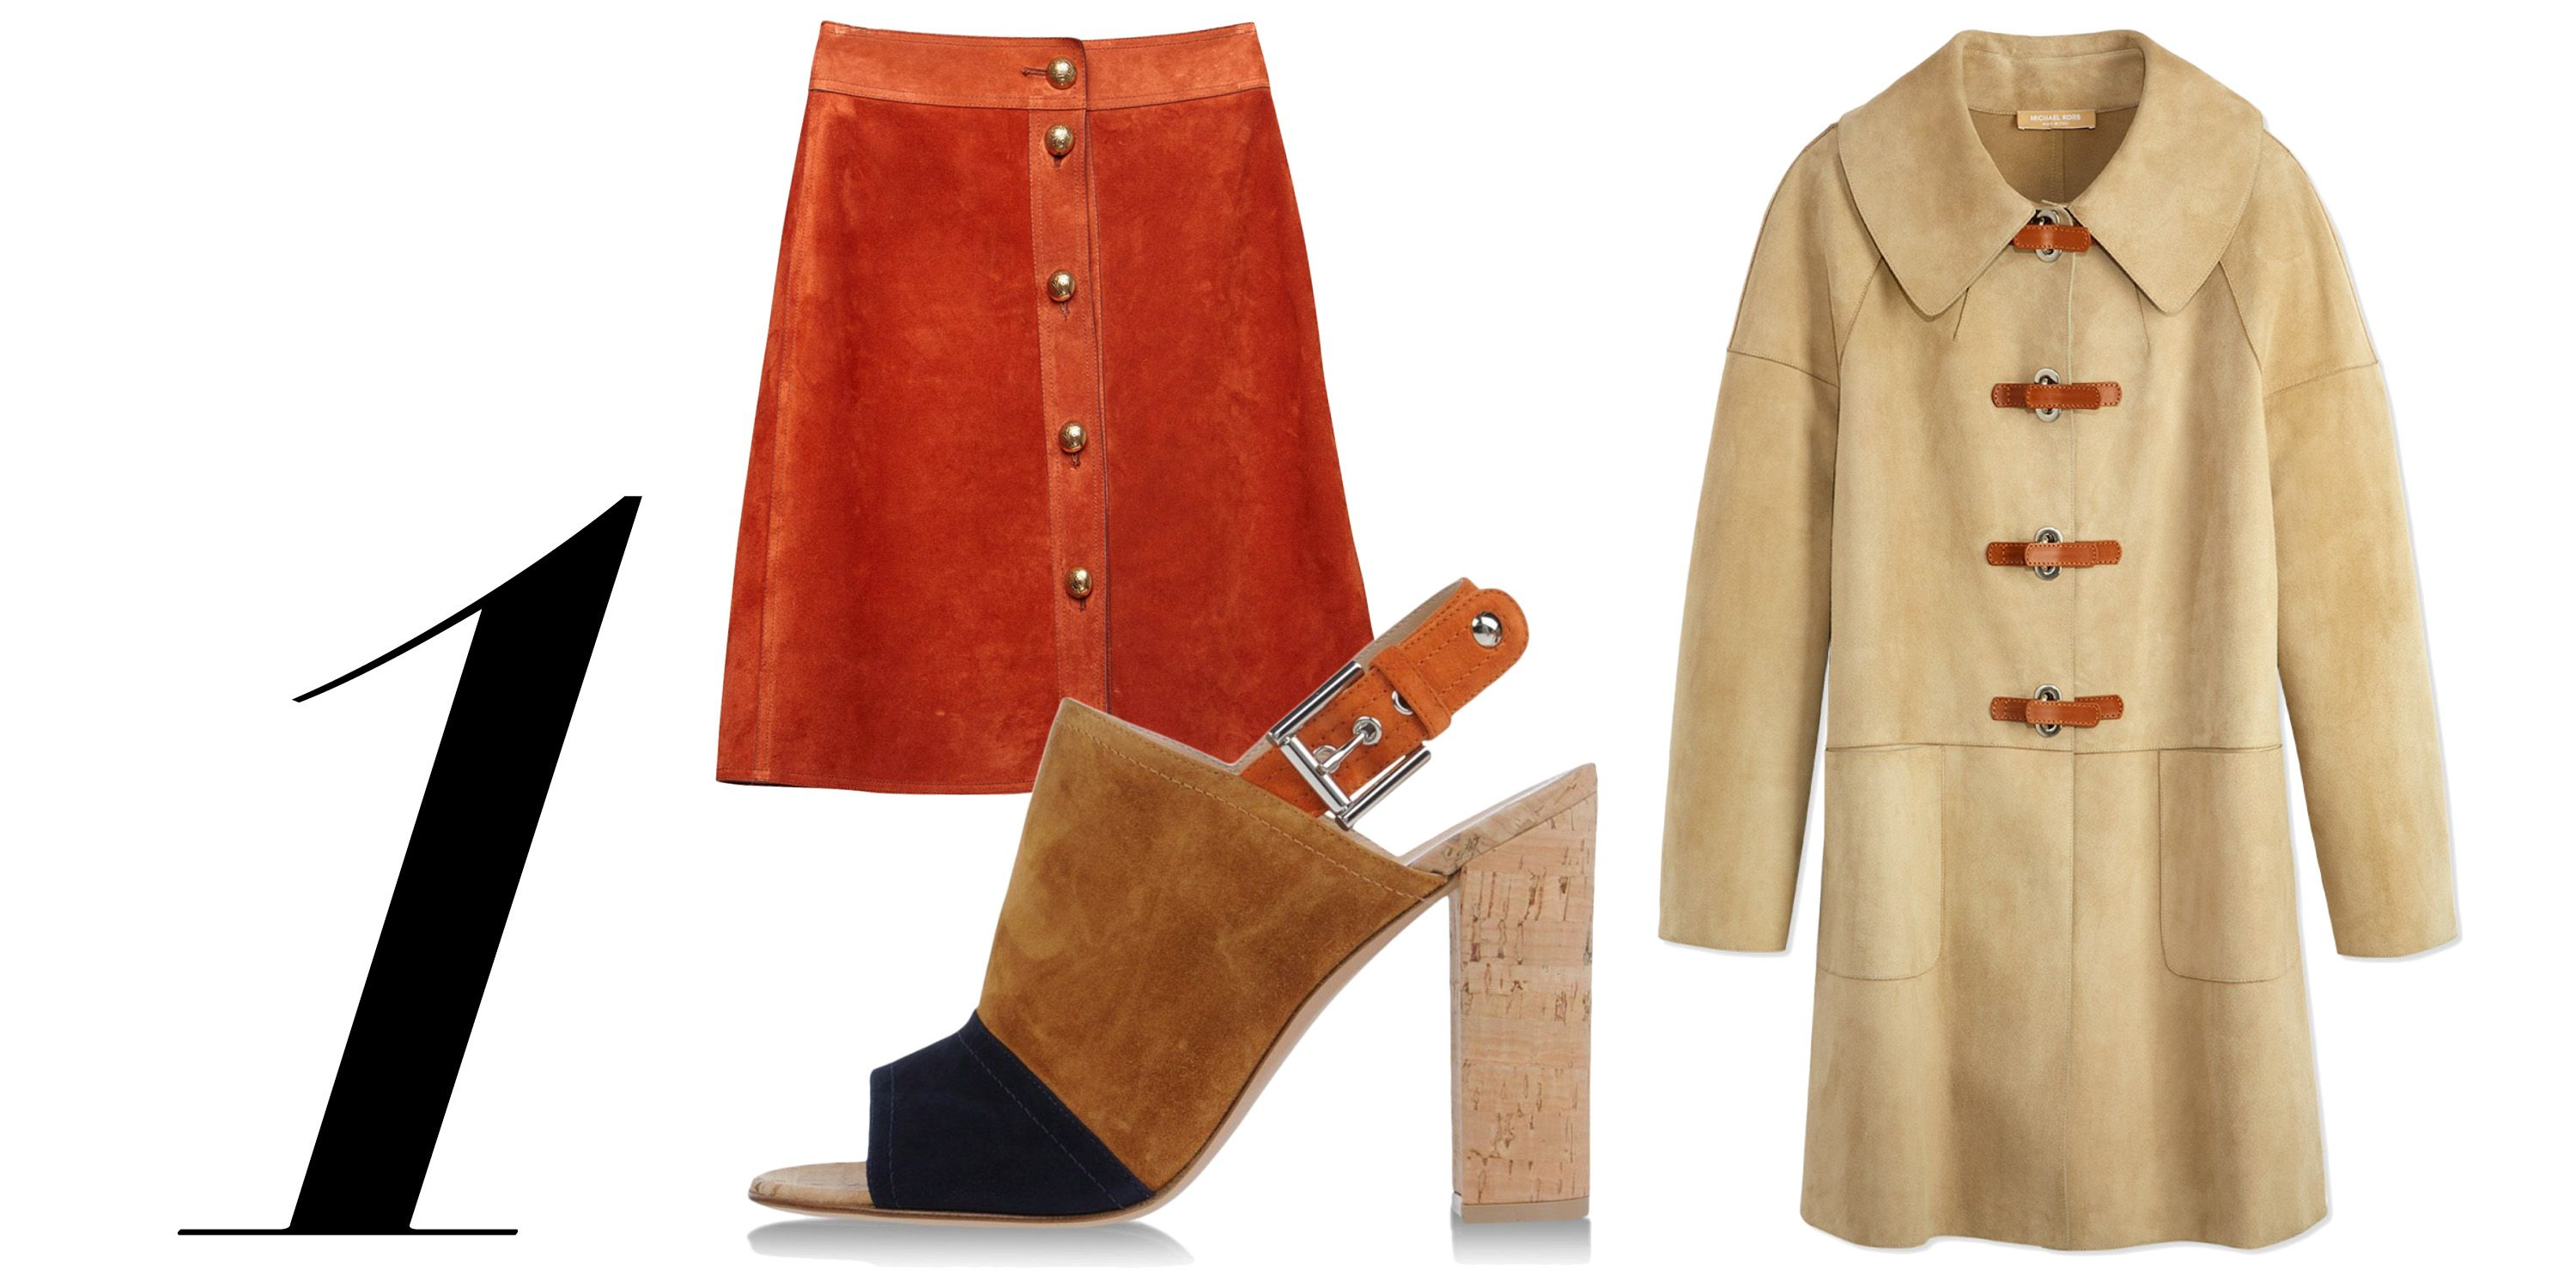 "Find the softer side of haute hides with rich, sumptuous suede.  <em>Michael Kors coat, $6,995, <a href=""http://shop.harpersbazaar.com/designers/michael-kors/suede-turn-lock-coat/"" target=""_blank"">shopBAZAAR.com</a>; Gucci skirt, $1,990, <a href=""http://shop.harpersbazaar.com/designers/gucci/suede-button-skirt/"" target=""_blank"">shopBAZAAR.com</a>; Gianvito Rossi heel, $695, <a href=""http://shop.harpersbazaar.com/designers/gianvito-rossi/color-block-suede-cork-slingback-sandal/"" target=""_blank"">shopBAZAAR.com</a>.</em>"